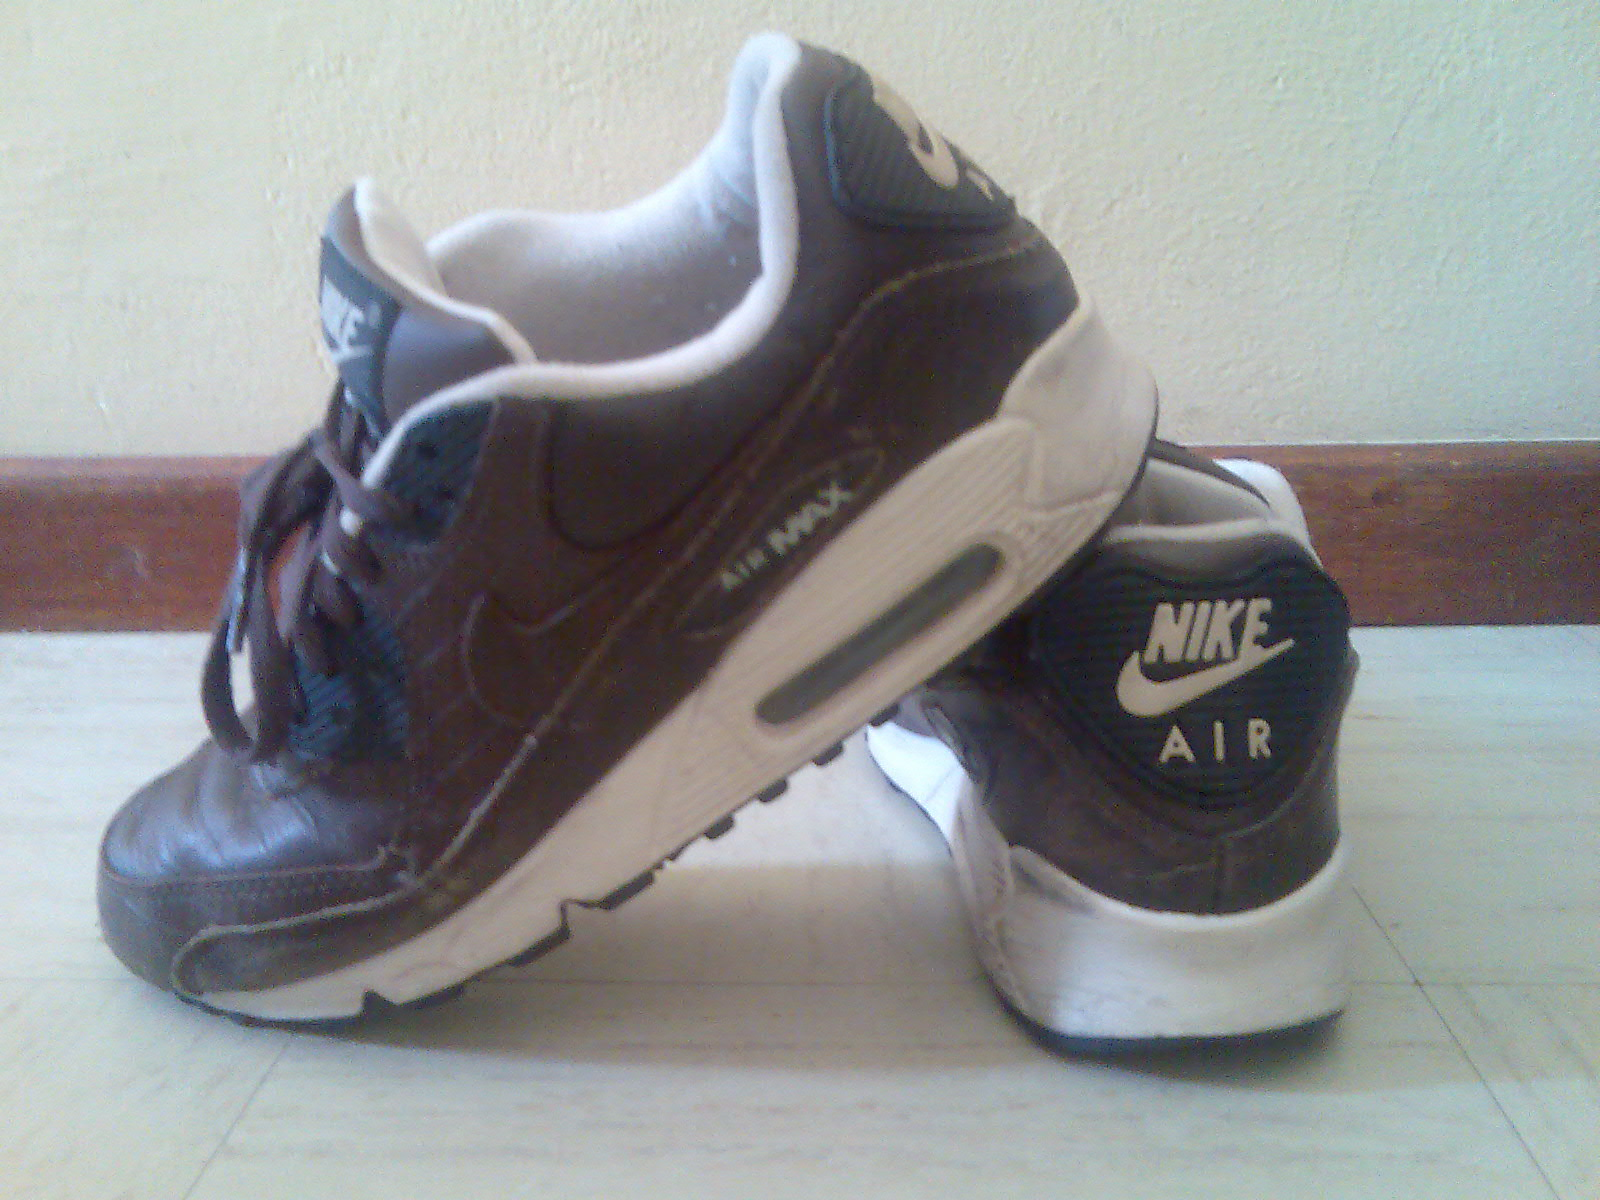 7816be7814a Nike Air Max - Wikipedia